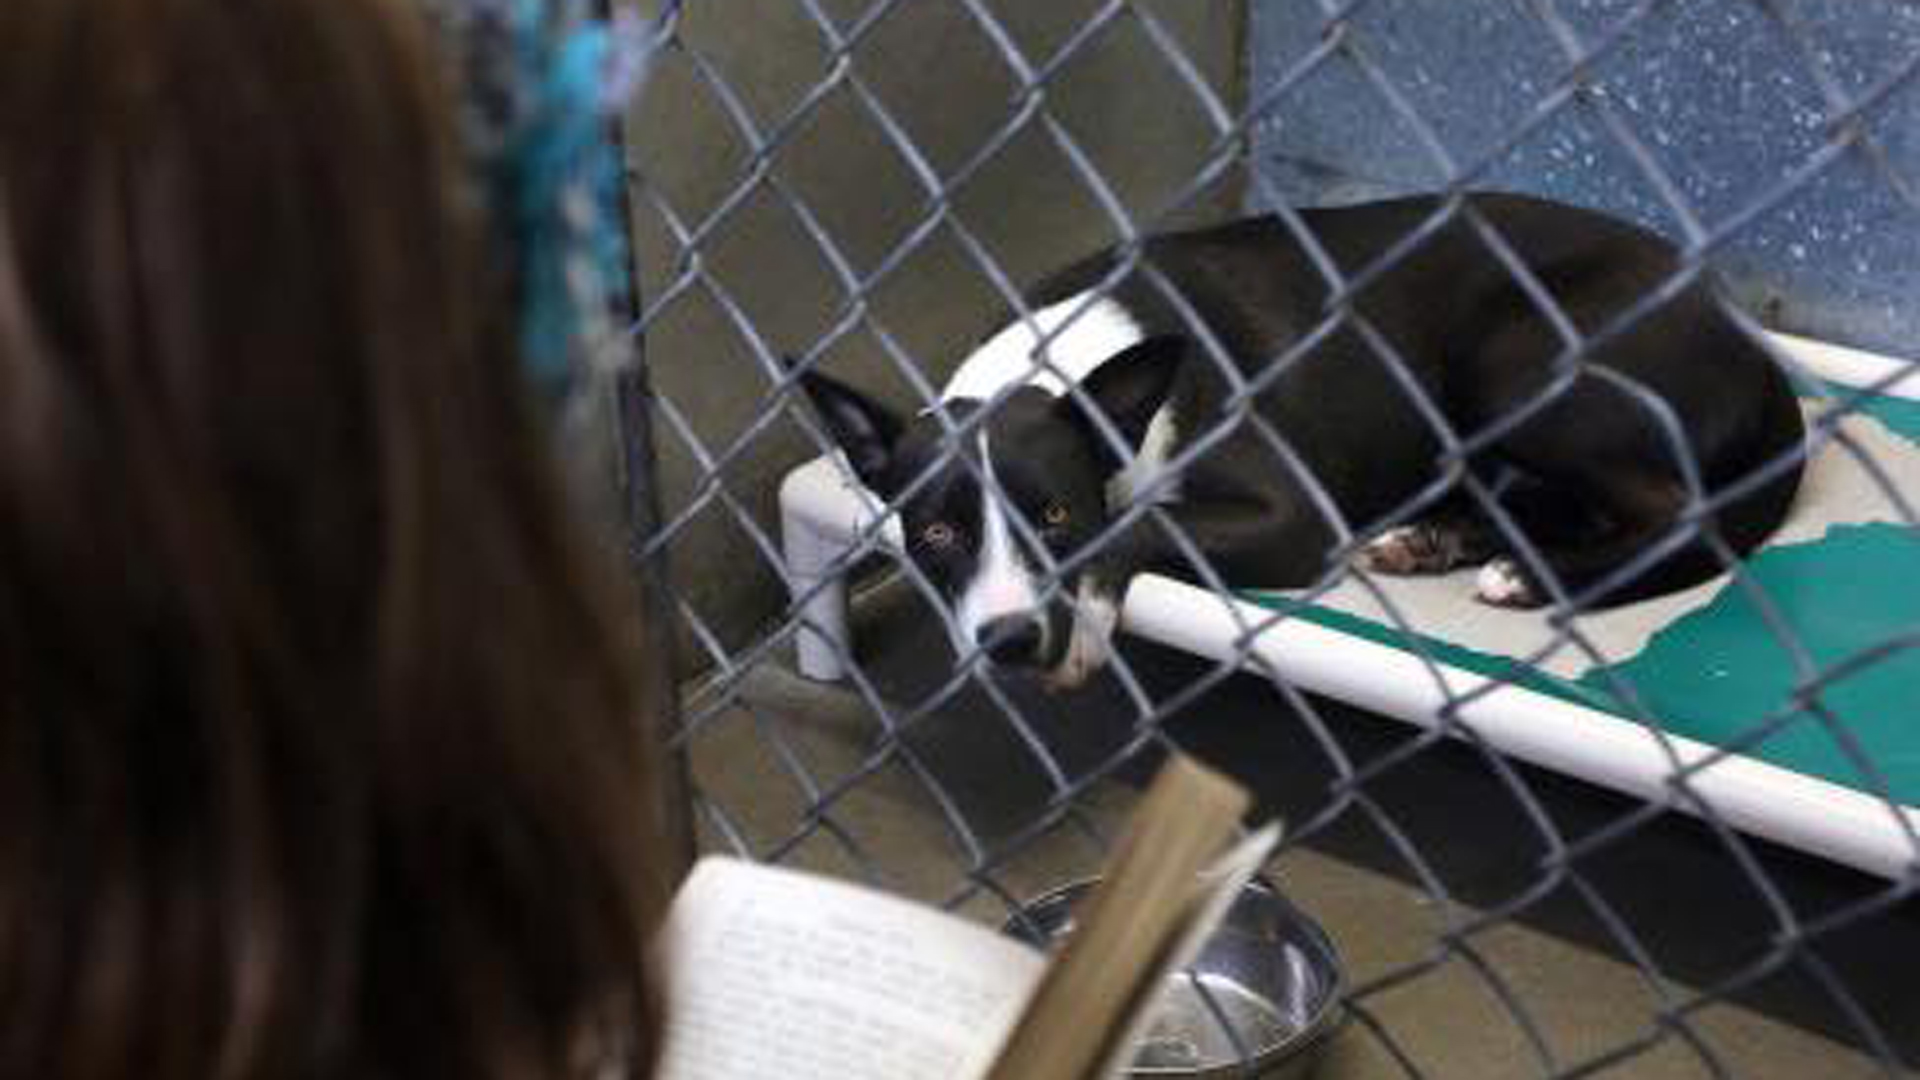 The Brevard County Sheriff's Office released a photo of dog in animal shelter on June 29, 2019.